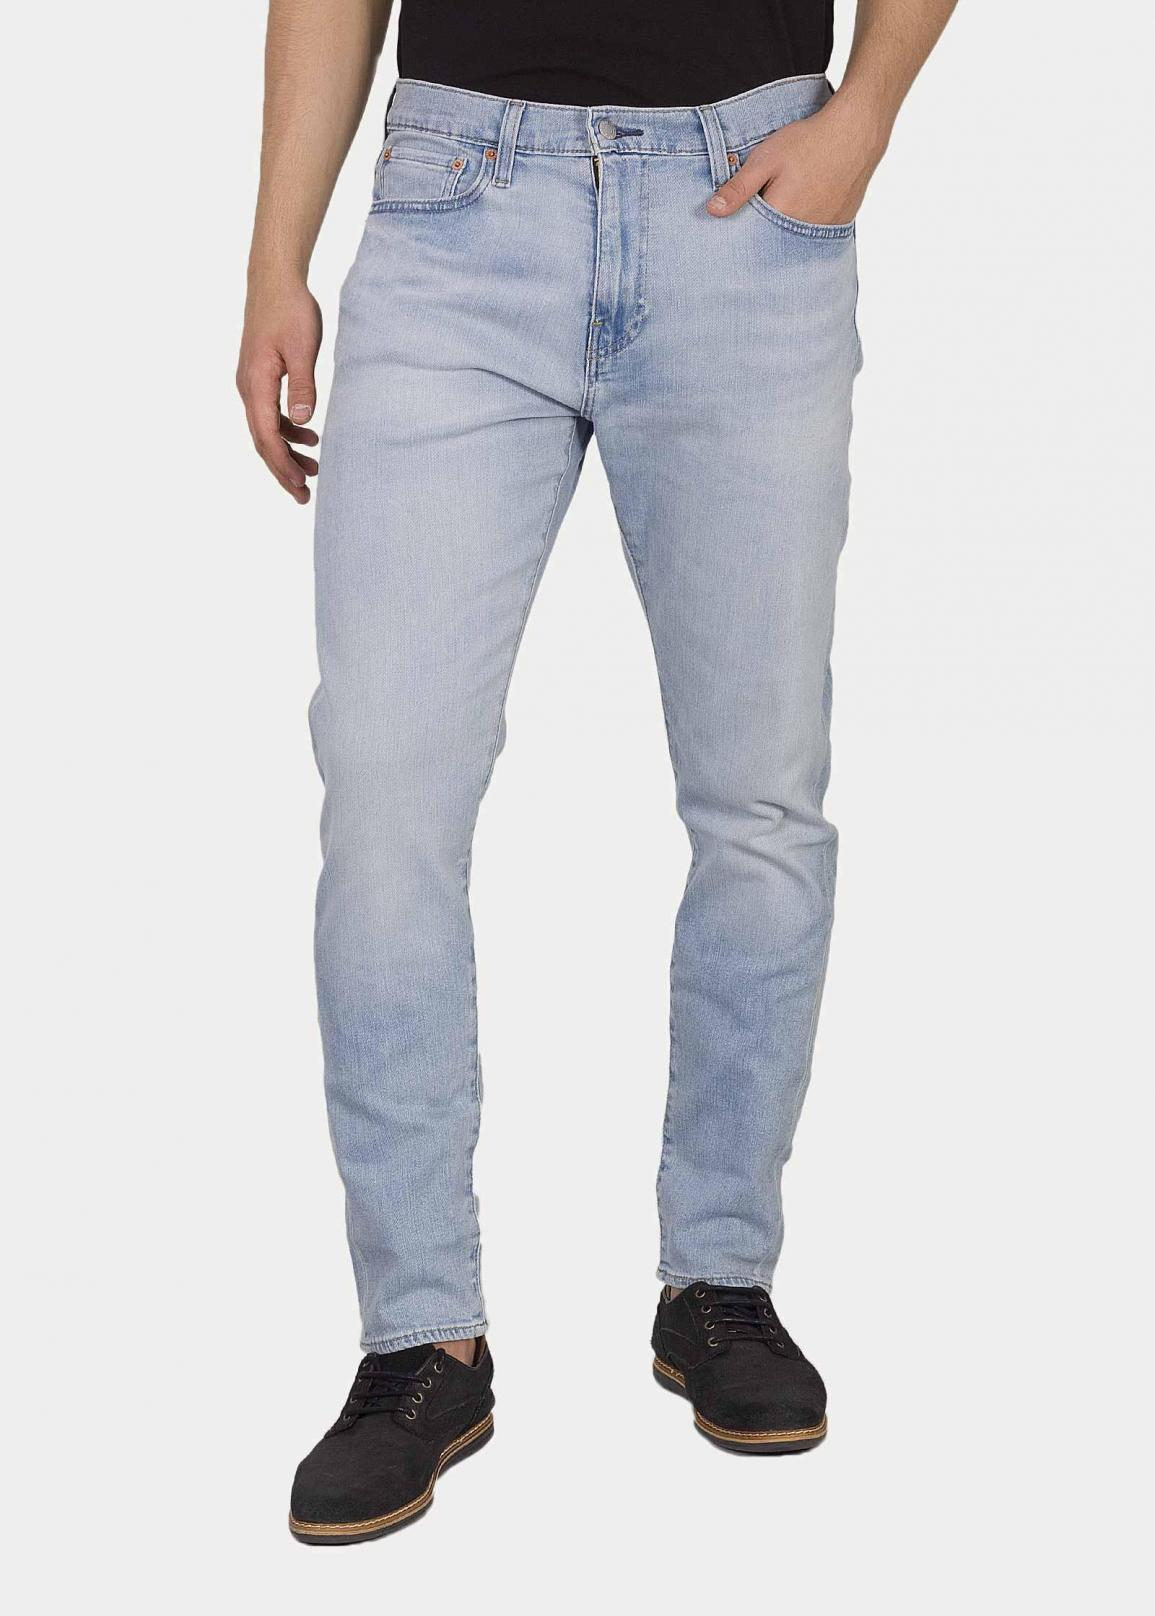 Levi's® 512 Slim Taper Fit - Gravie Fog Adv